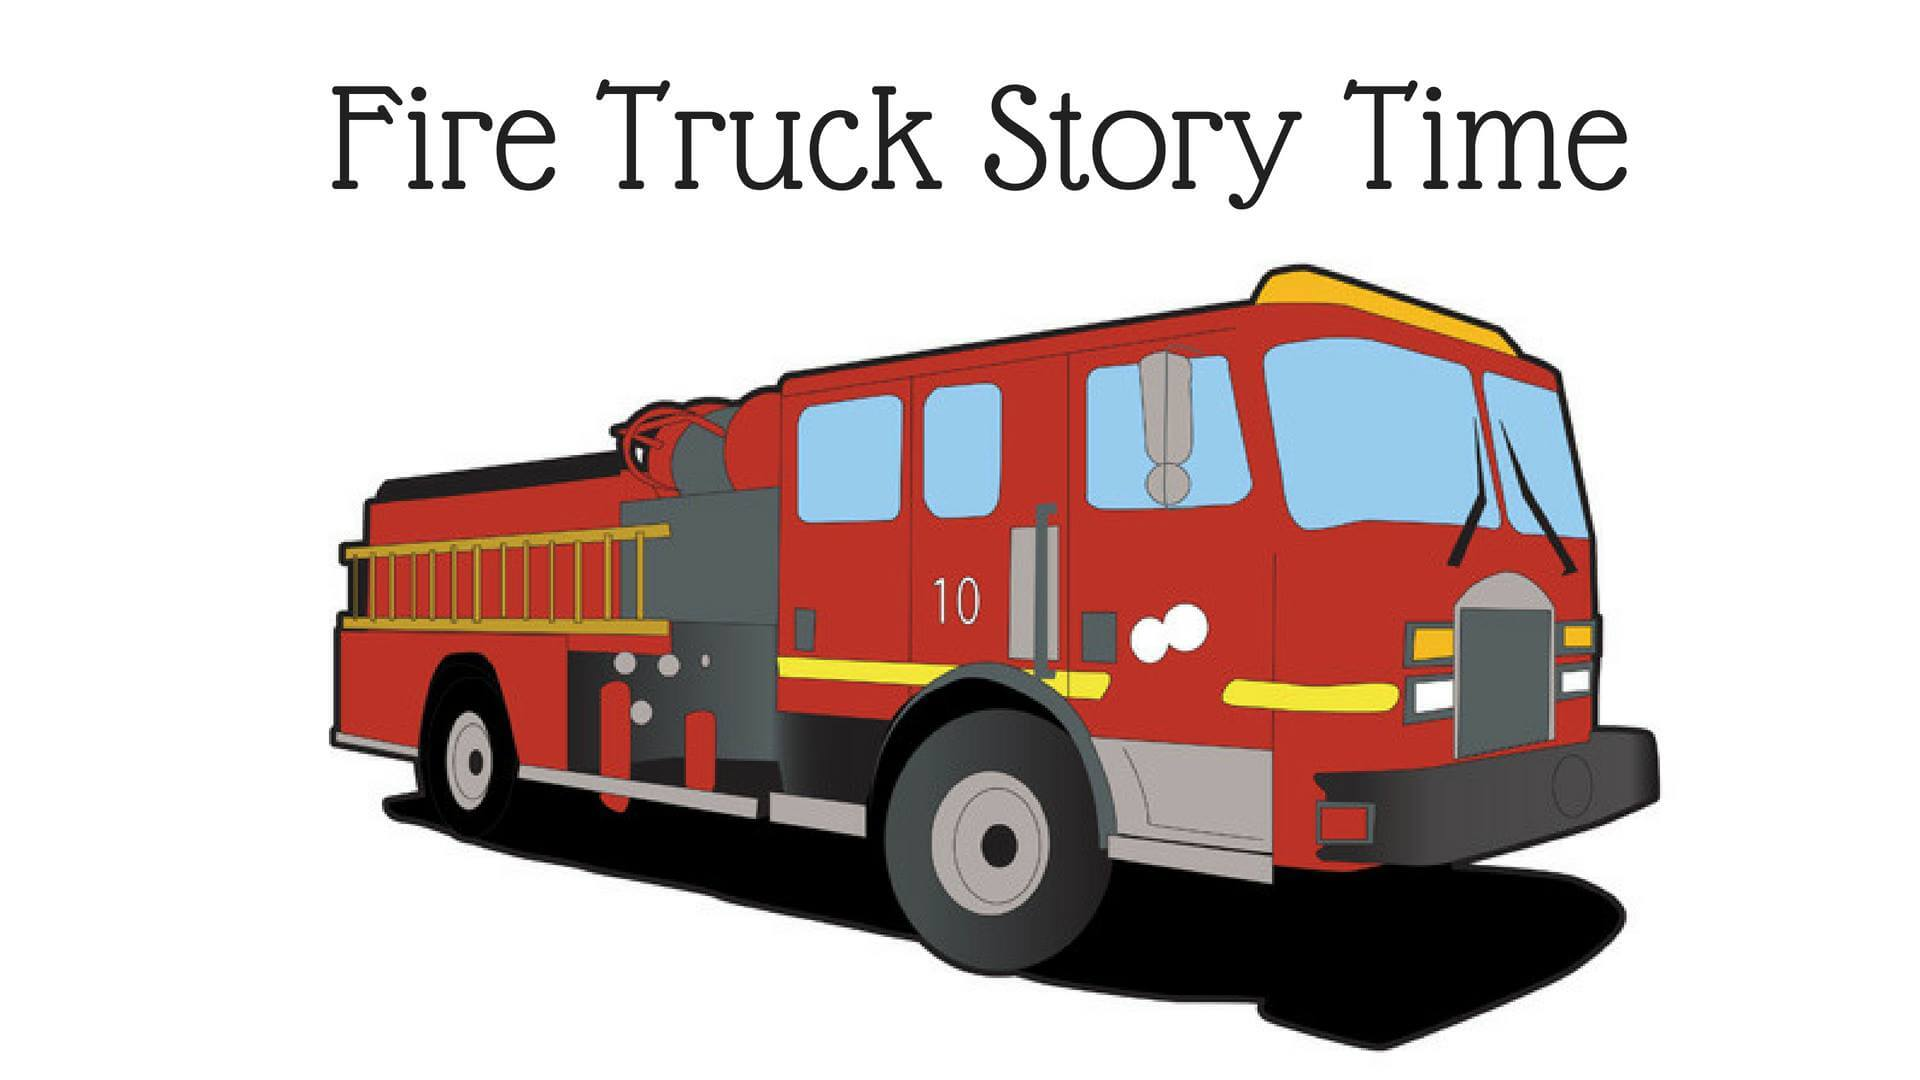 Freeport Community Library - Fire Truck Story Time